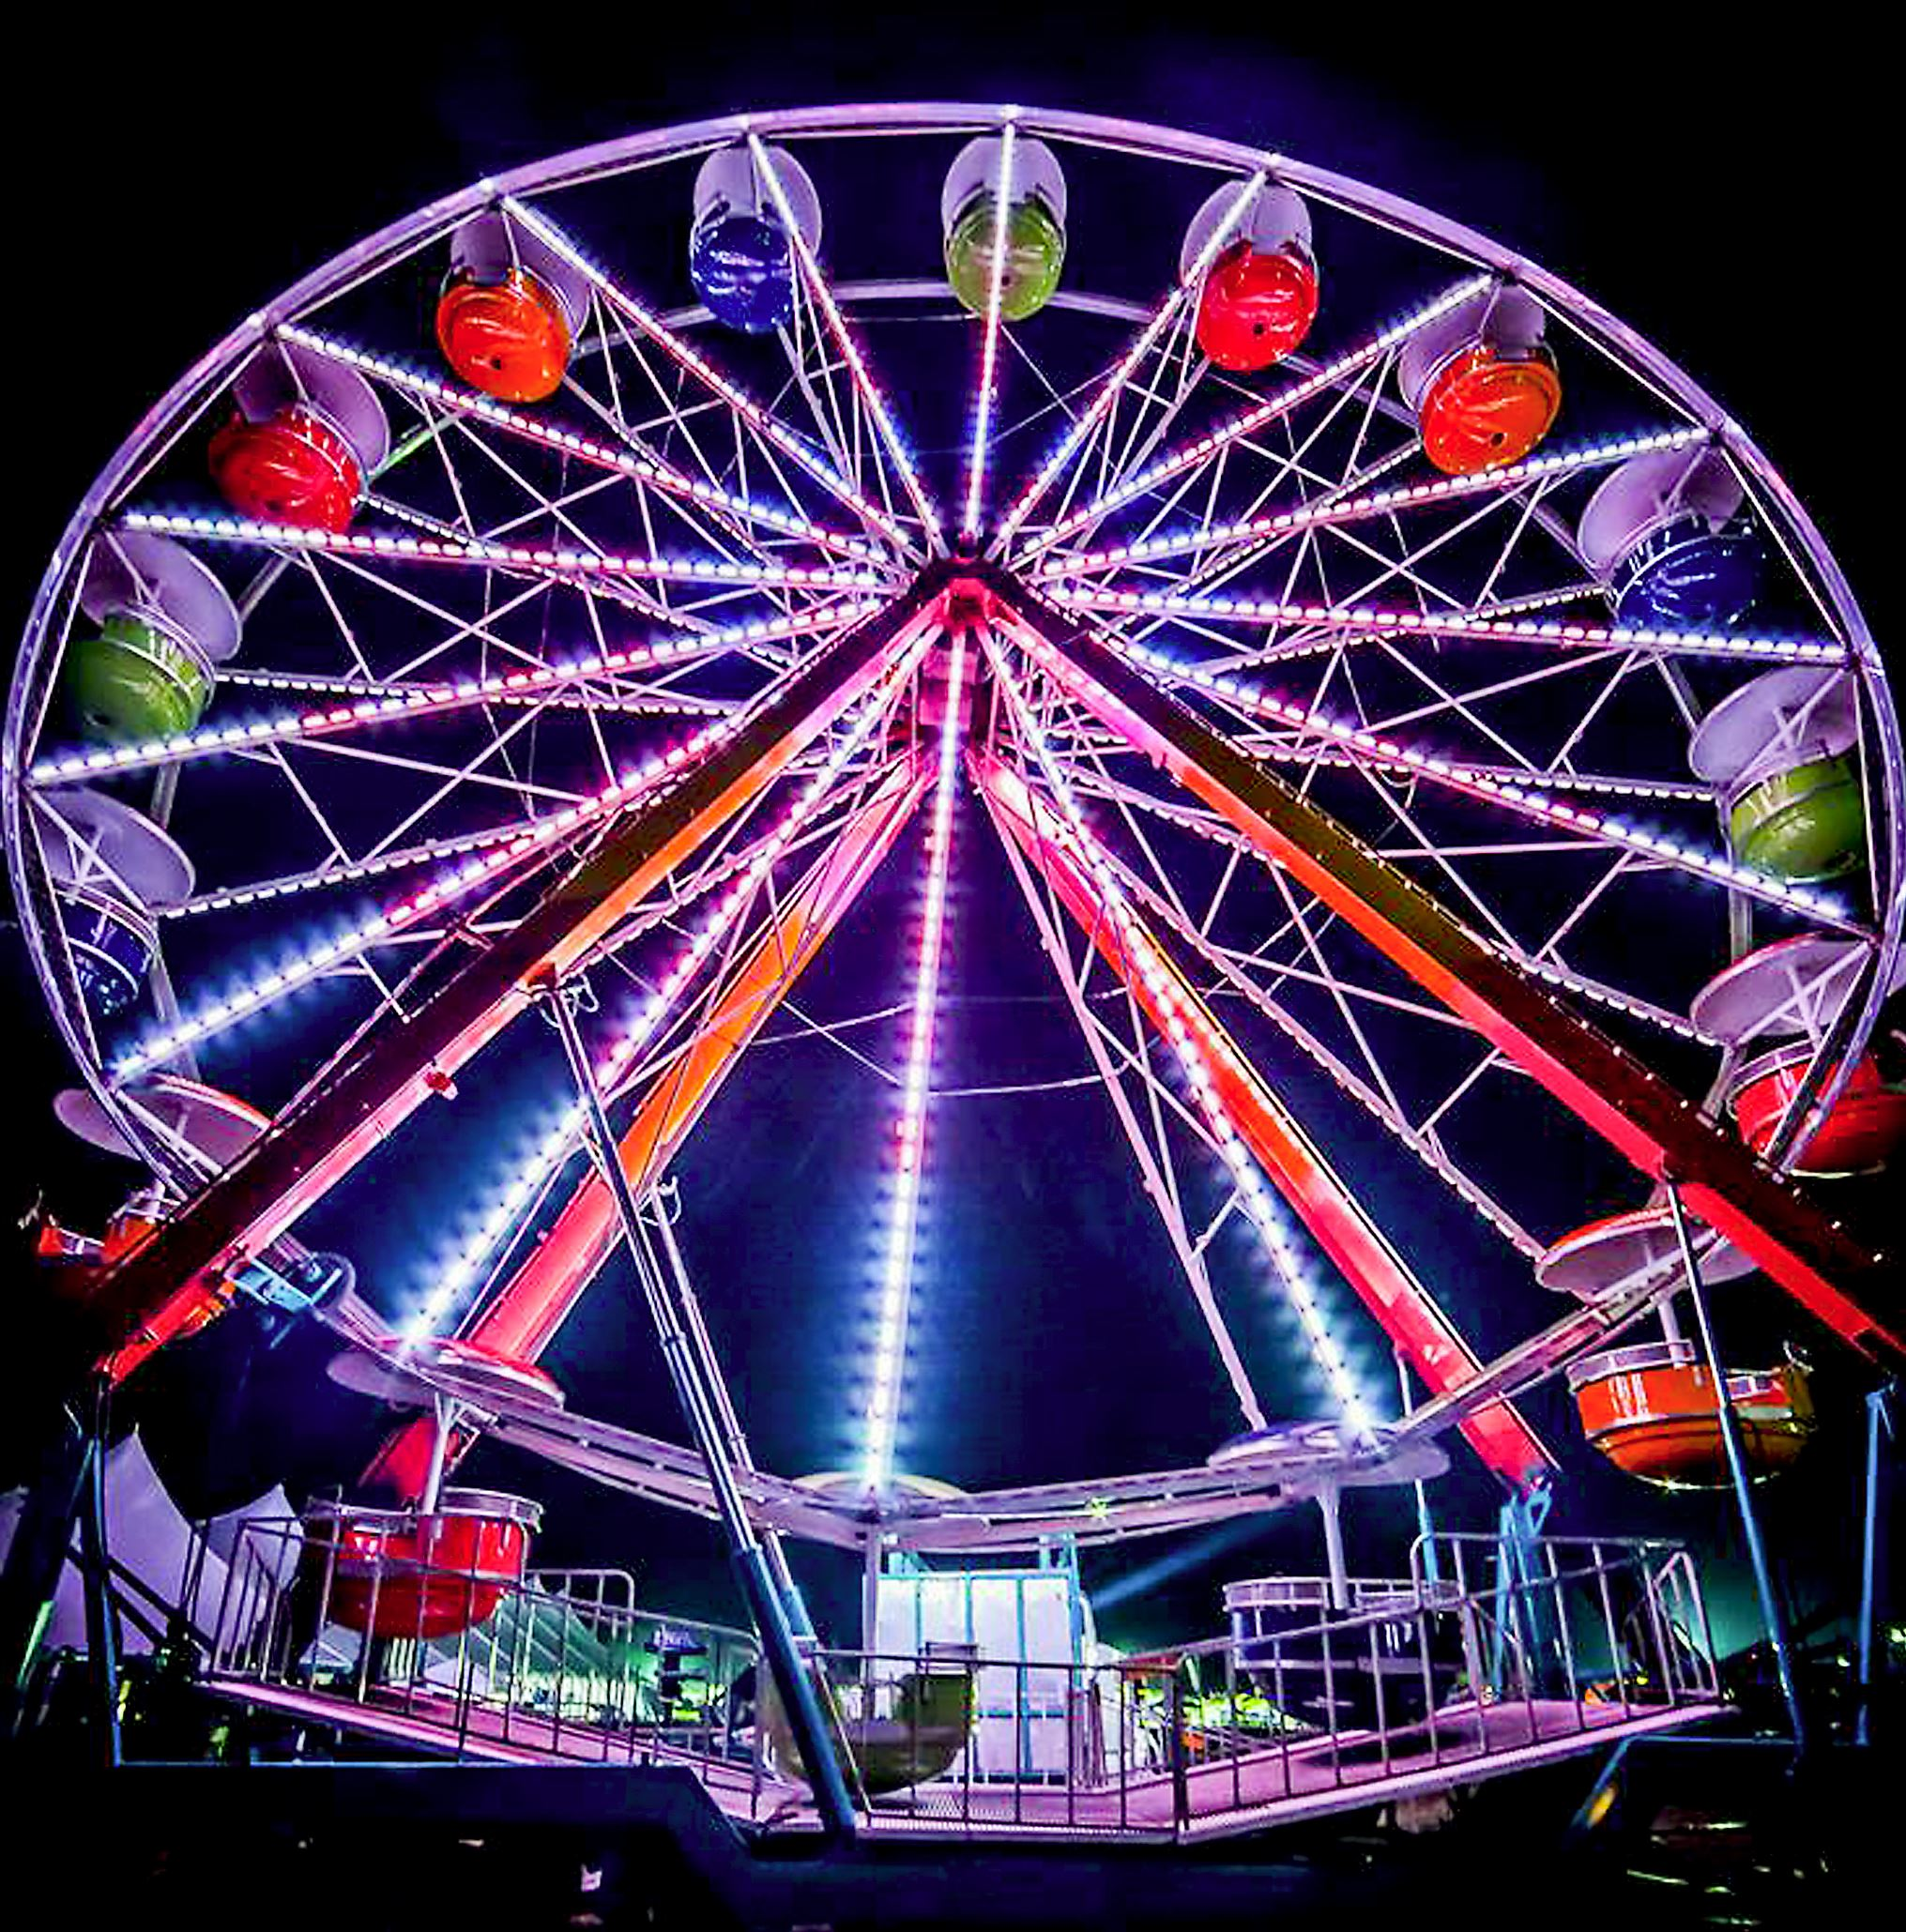 wheel-of-lights